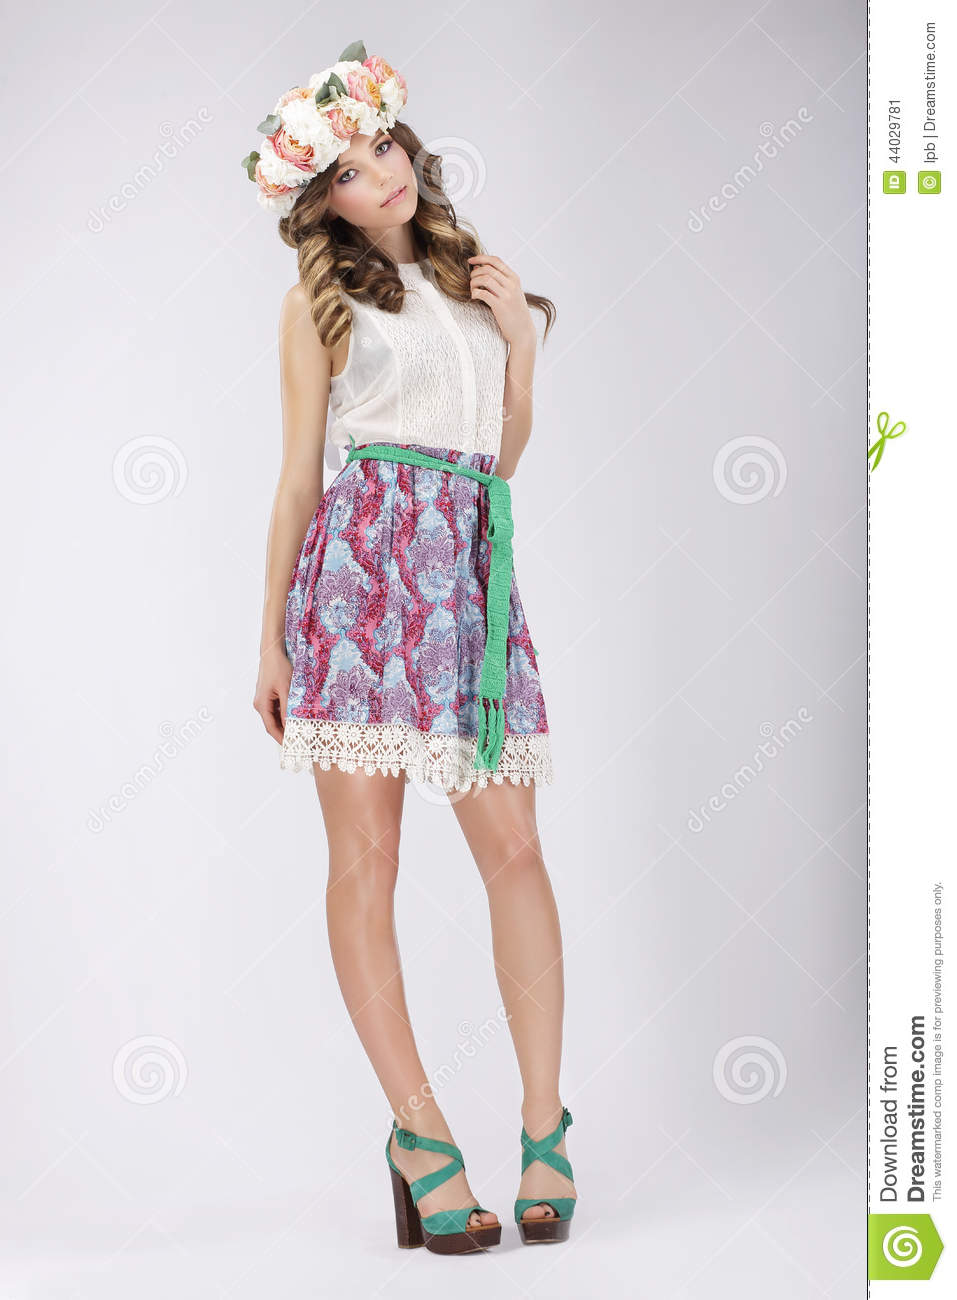 Young Woman in Lacy Skirt and Blouse with Flowers